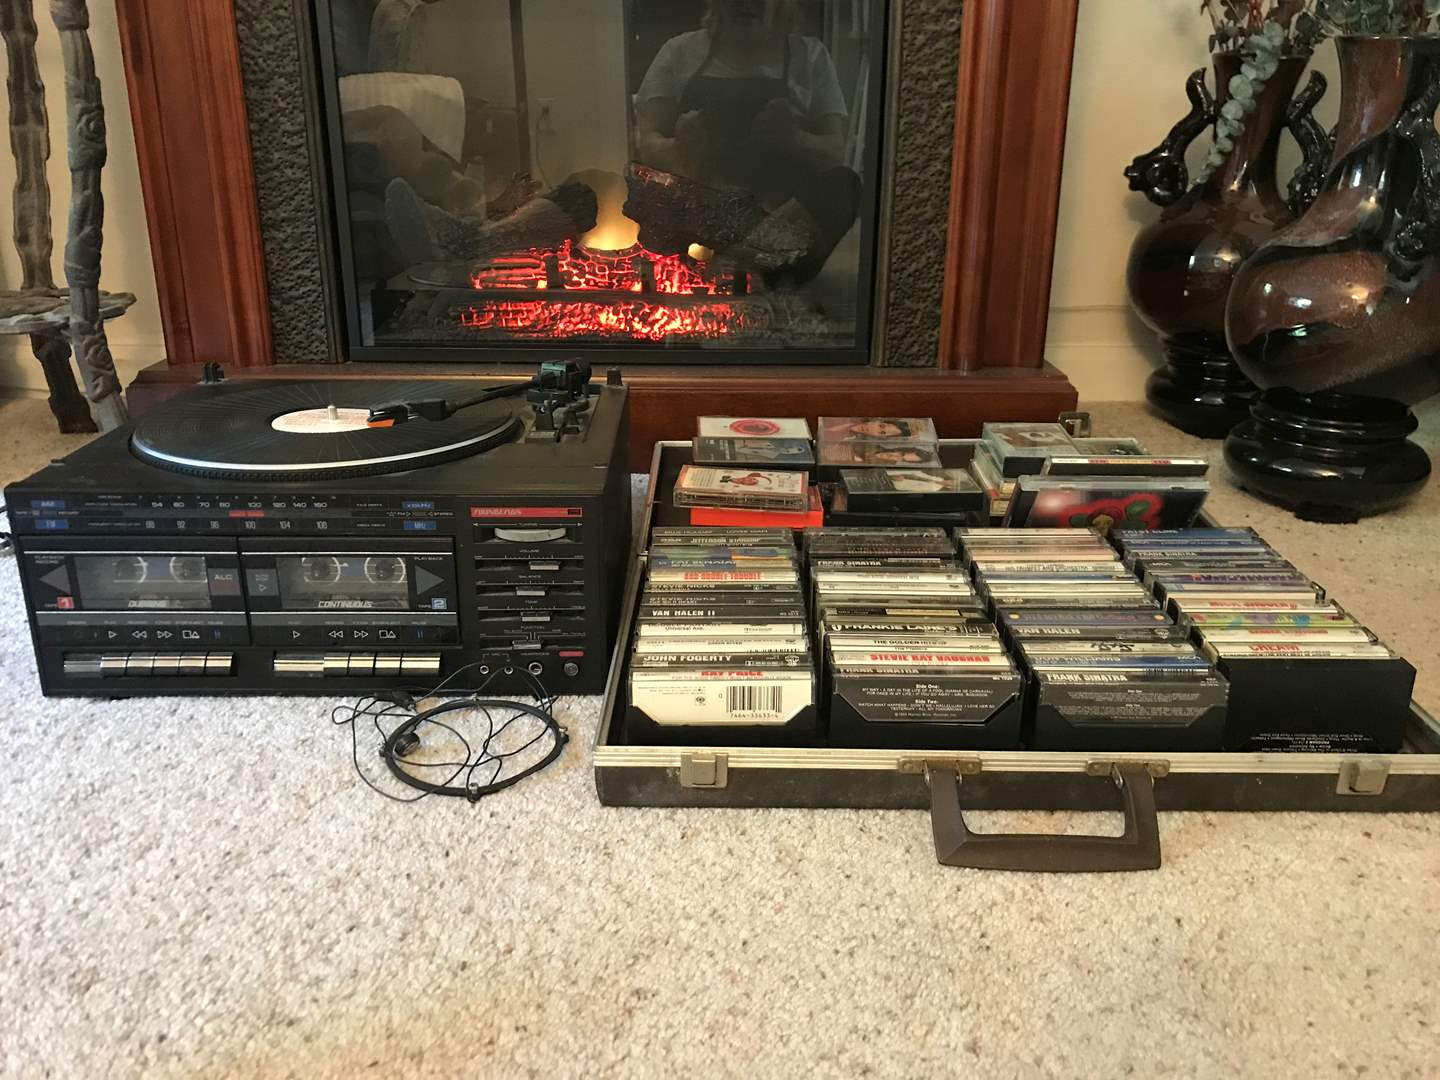 """Lot # 24 - Soundesign Stereo System w/Turn Table, DVD's Cassettes, """"All She Wrote"""" DVD Signed by Entire Band (main image)"""